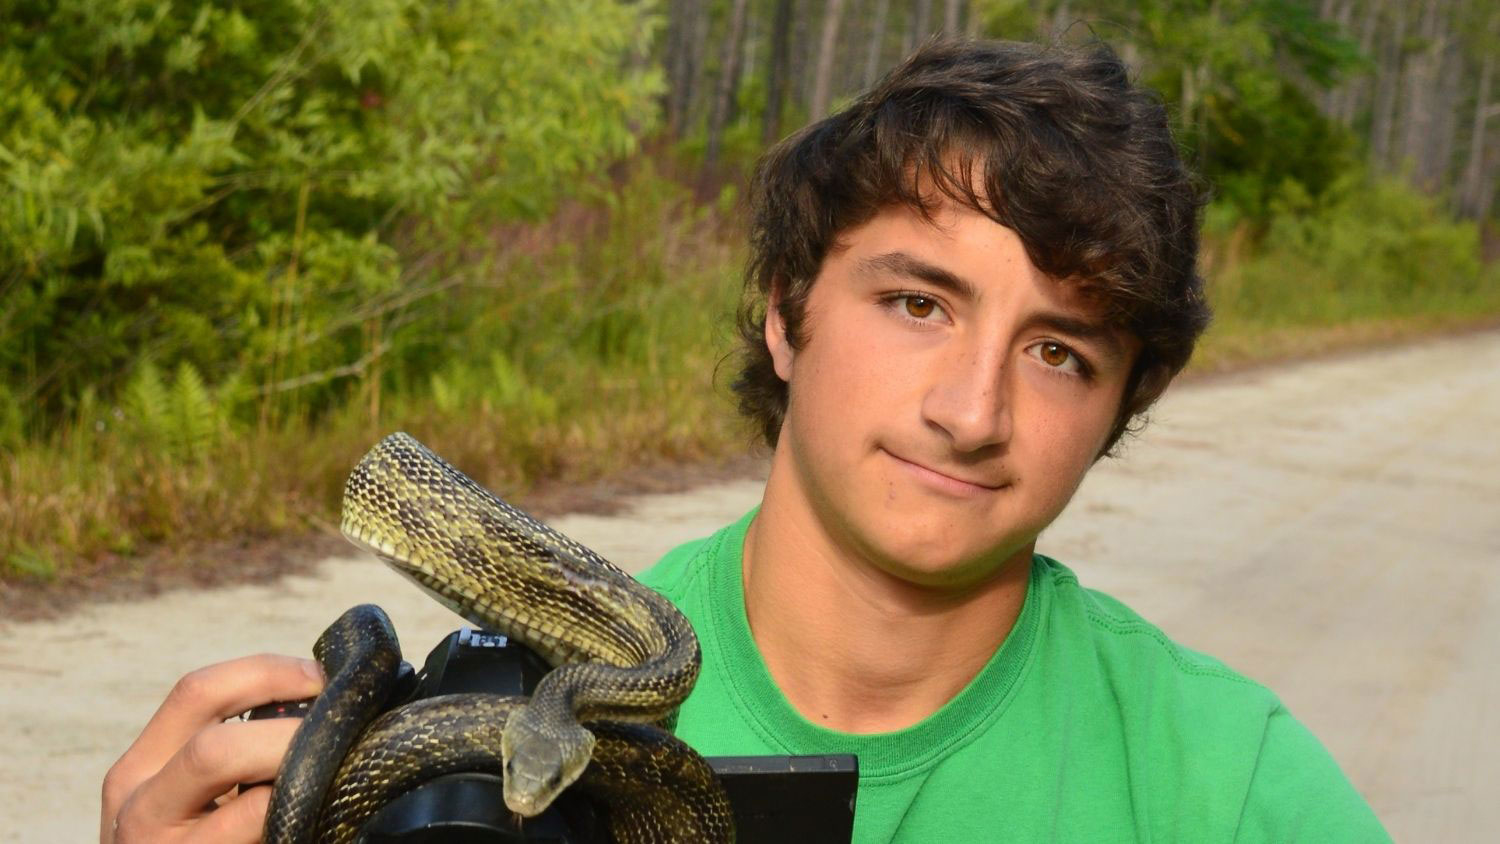 Ben Zino with a snake - CNR Student Ben Zino is Promoting Wildlife Conservation One Video at a Time - Forestry and Environmental Resources Department at NC State